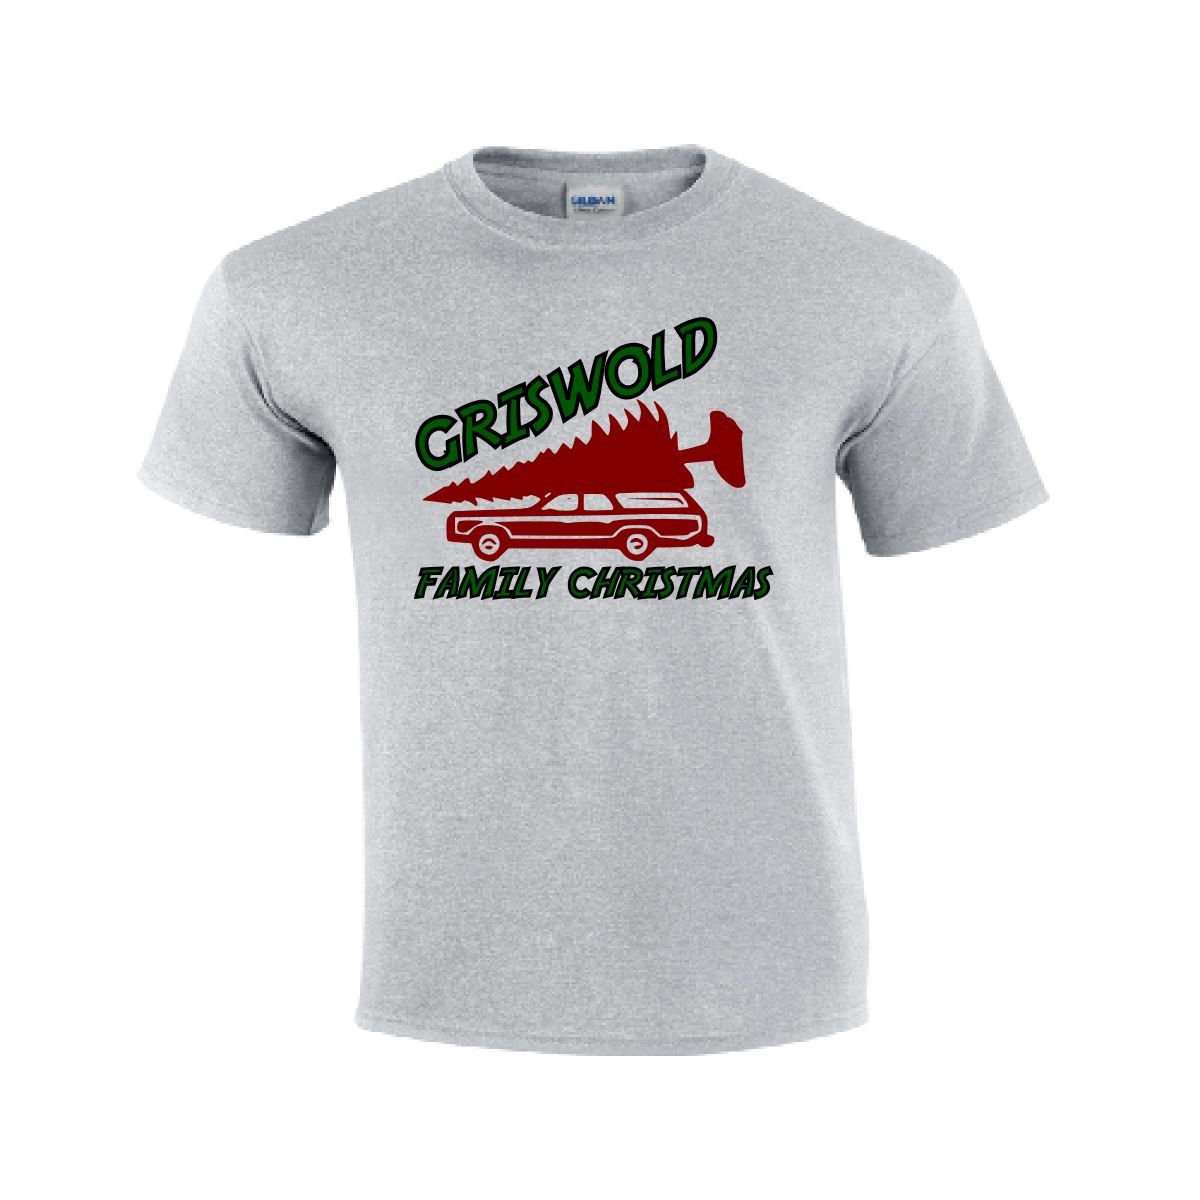 5a08dba87 GRISWOLD FAMILY CHRISTMAS CLARK GRISWALD TREE FUNNY XMAS HOLIDAY GILDAN T  SHIRT-in T-Shirts from Men's Clothing on Aliexpress.com | Alibaba Group